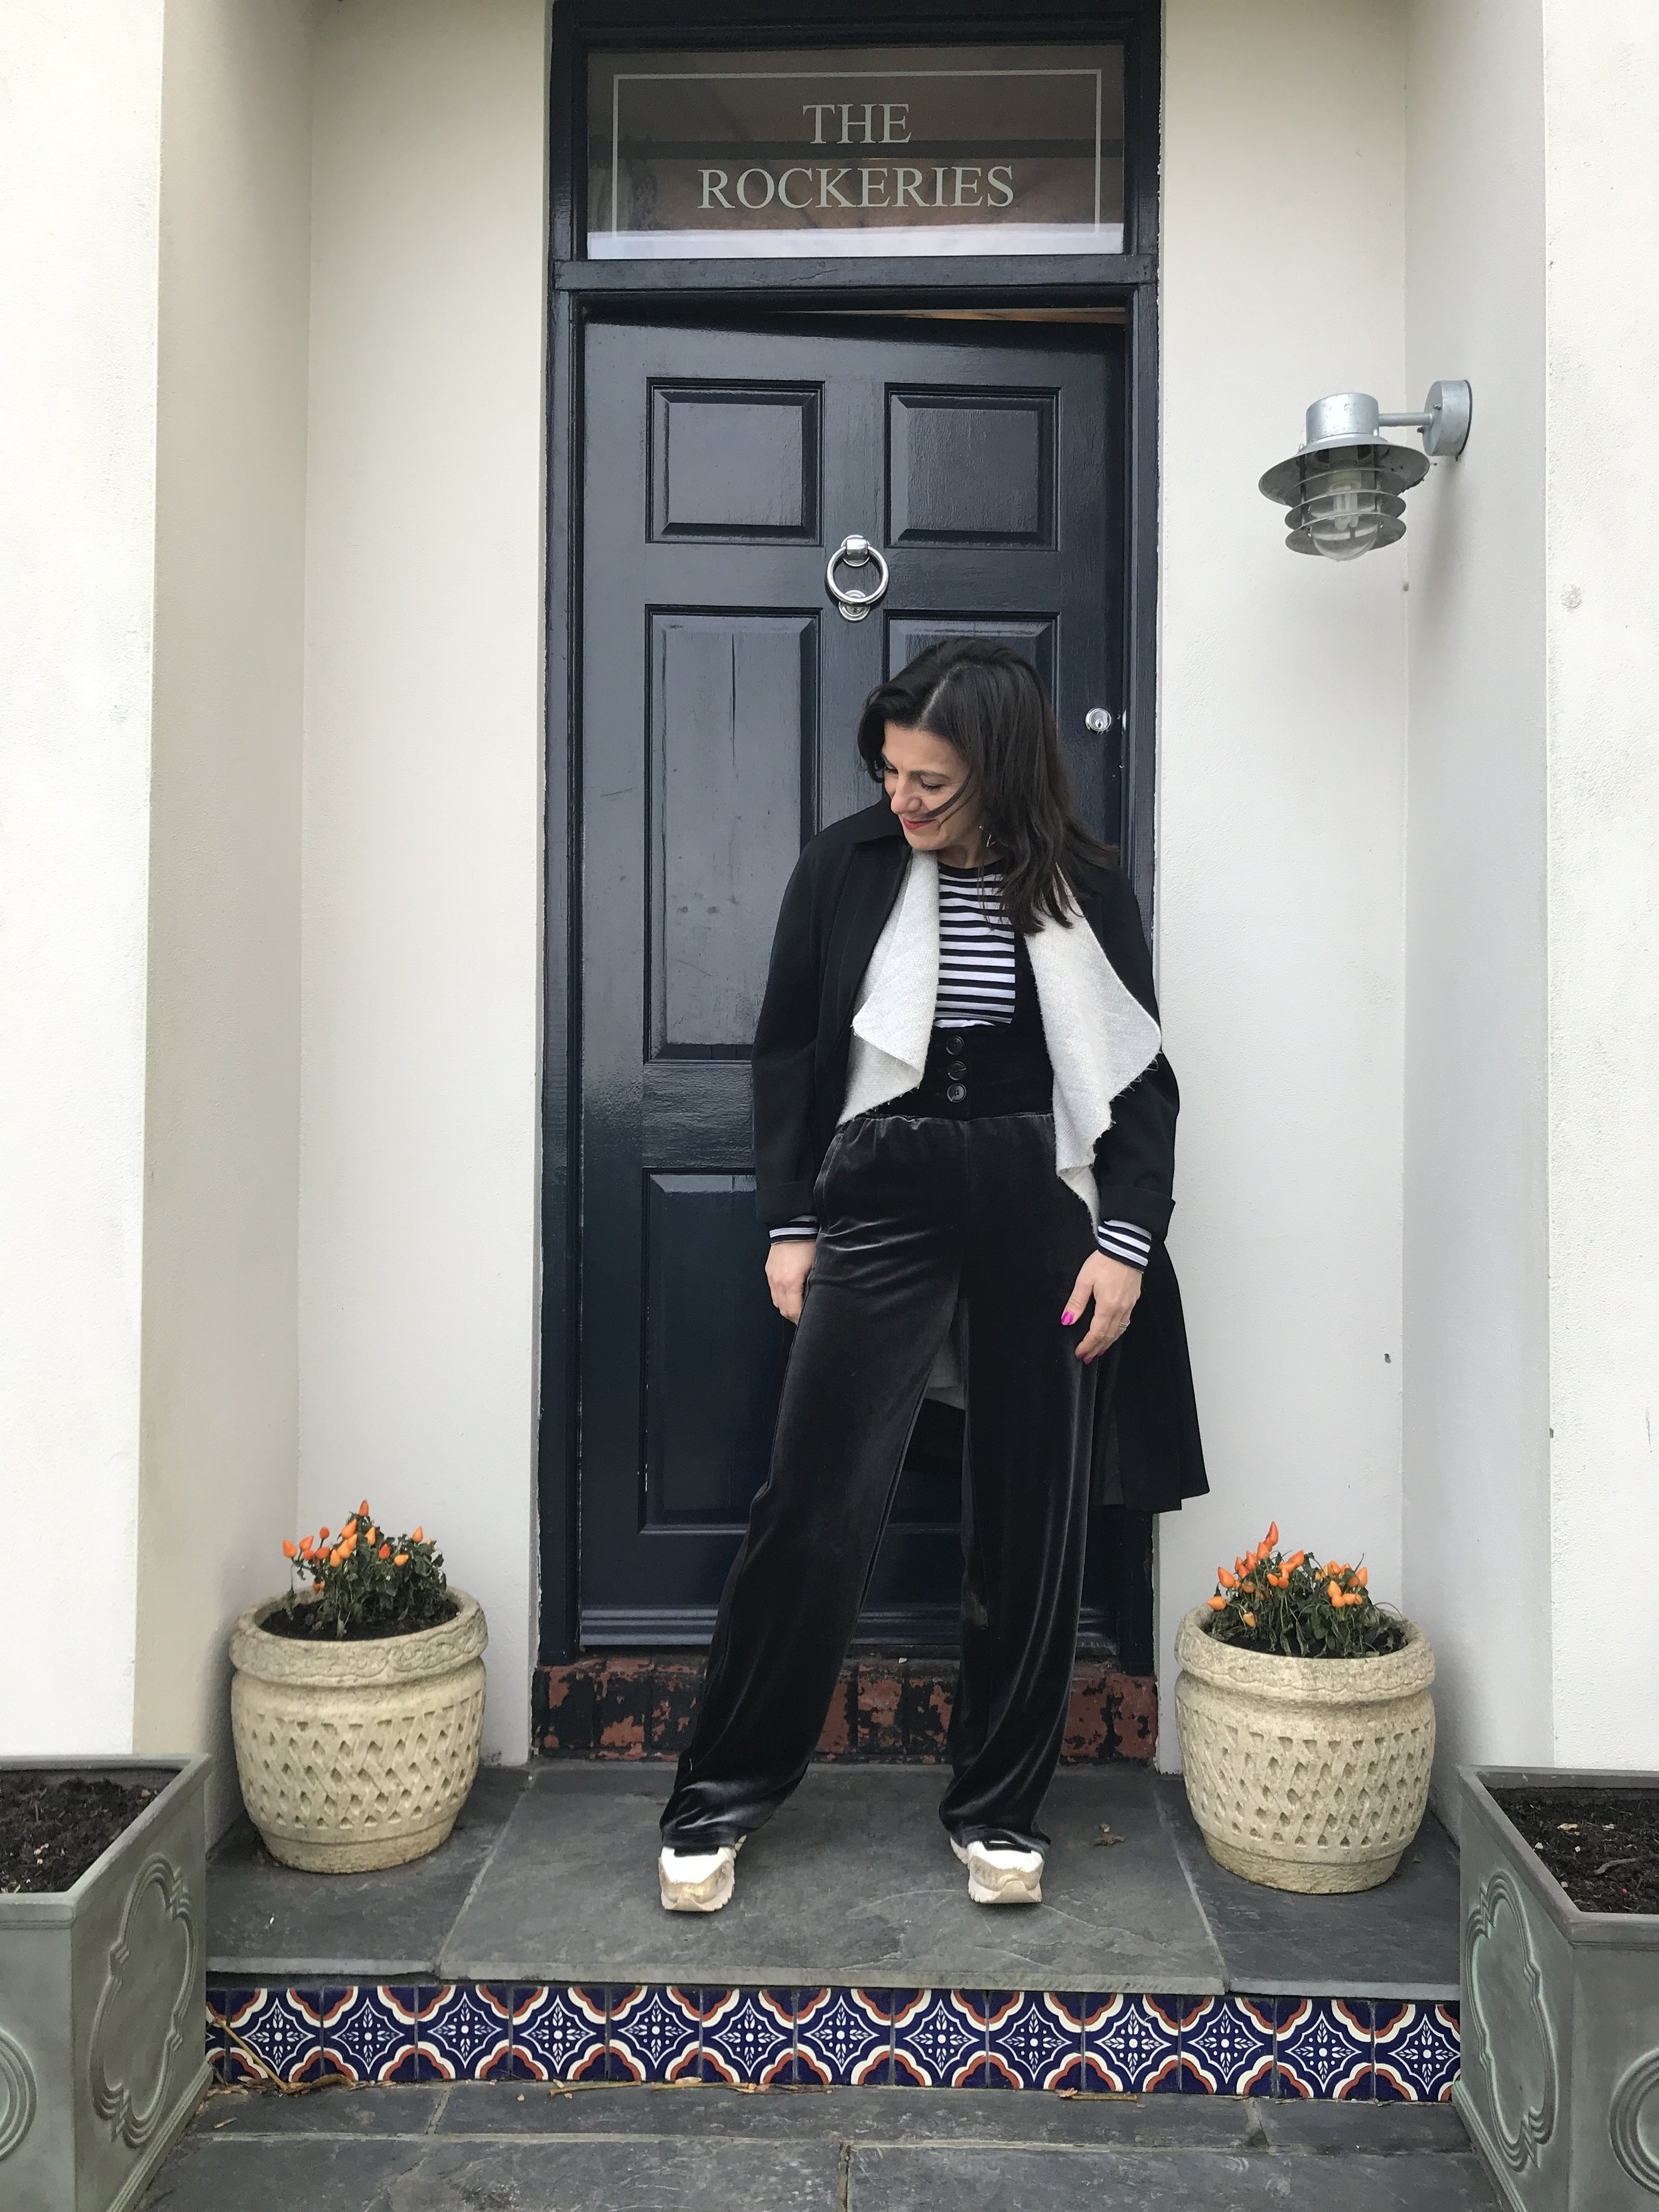 For the outfit I'm wearing velvet tracksuit bottoms, keeping the colours monochrome but playing with texture and adding a velvet fitted waistcoat.